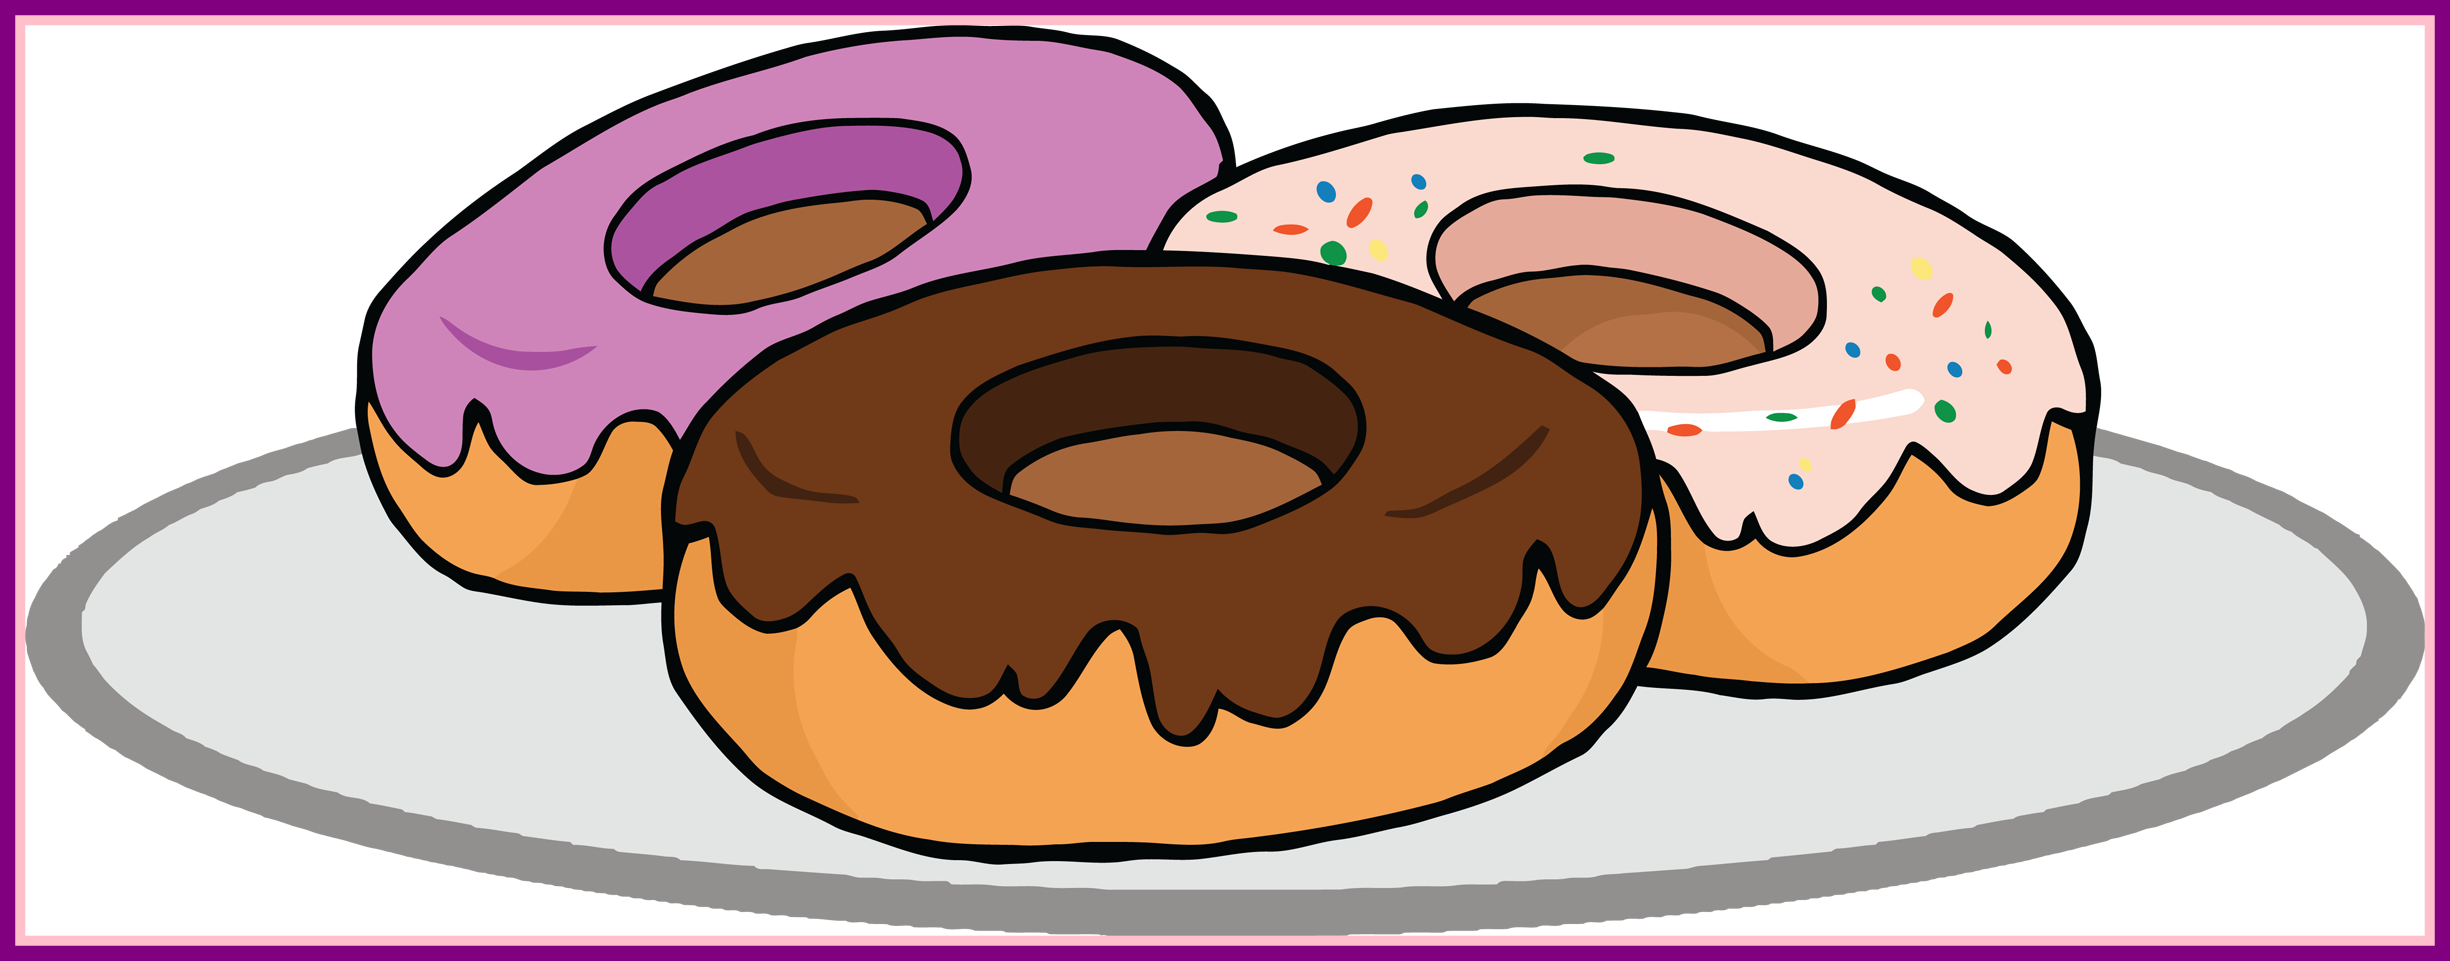 Donuts clipart printable. Shocking donut clip art